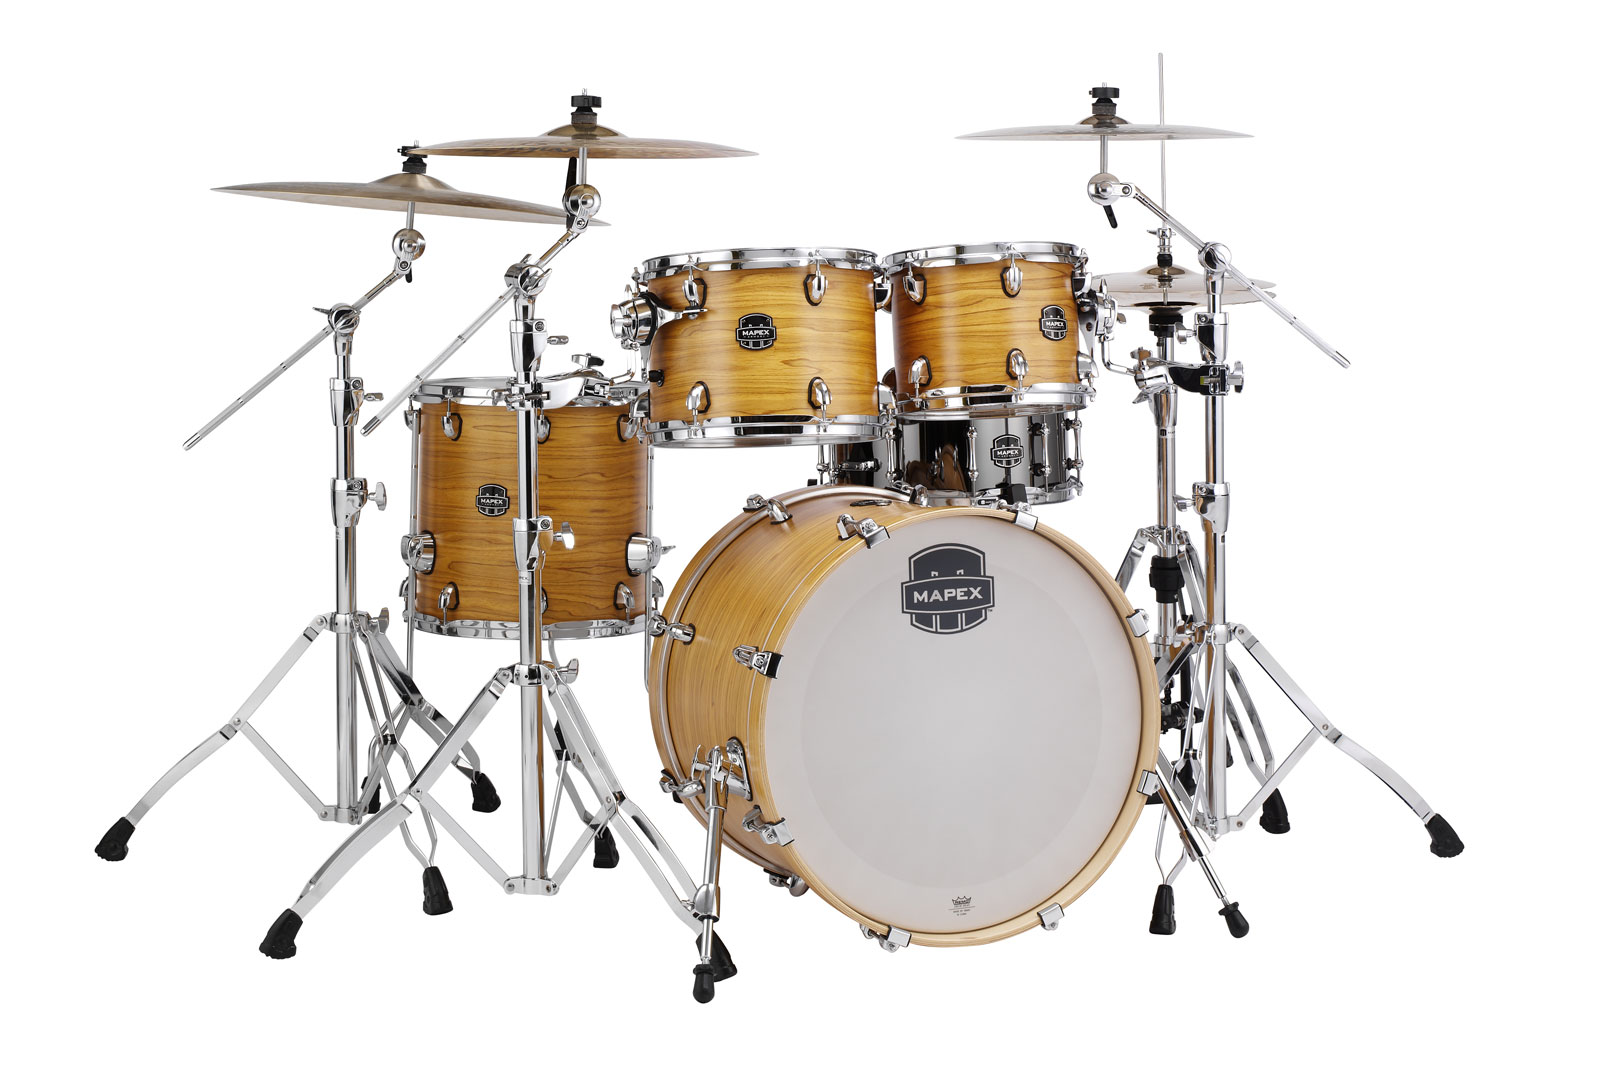 MAPEX ARMORY 5 FUTS STAGE ROCK 22 DESERT DUNE (SANS HARDWARE)